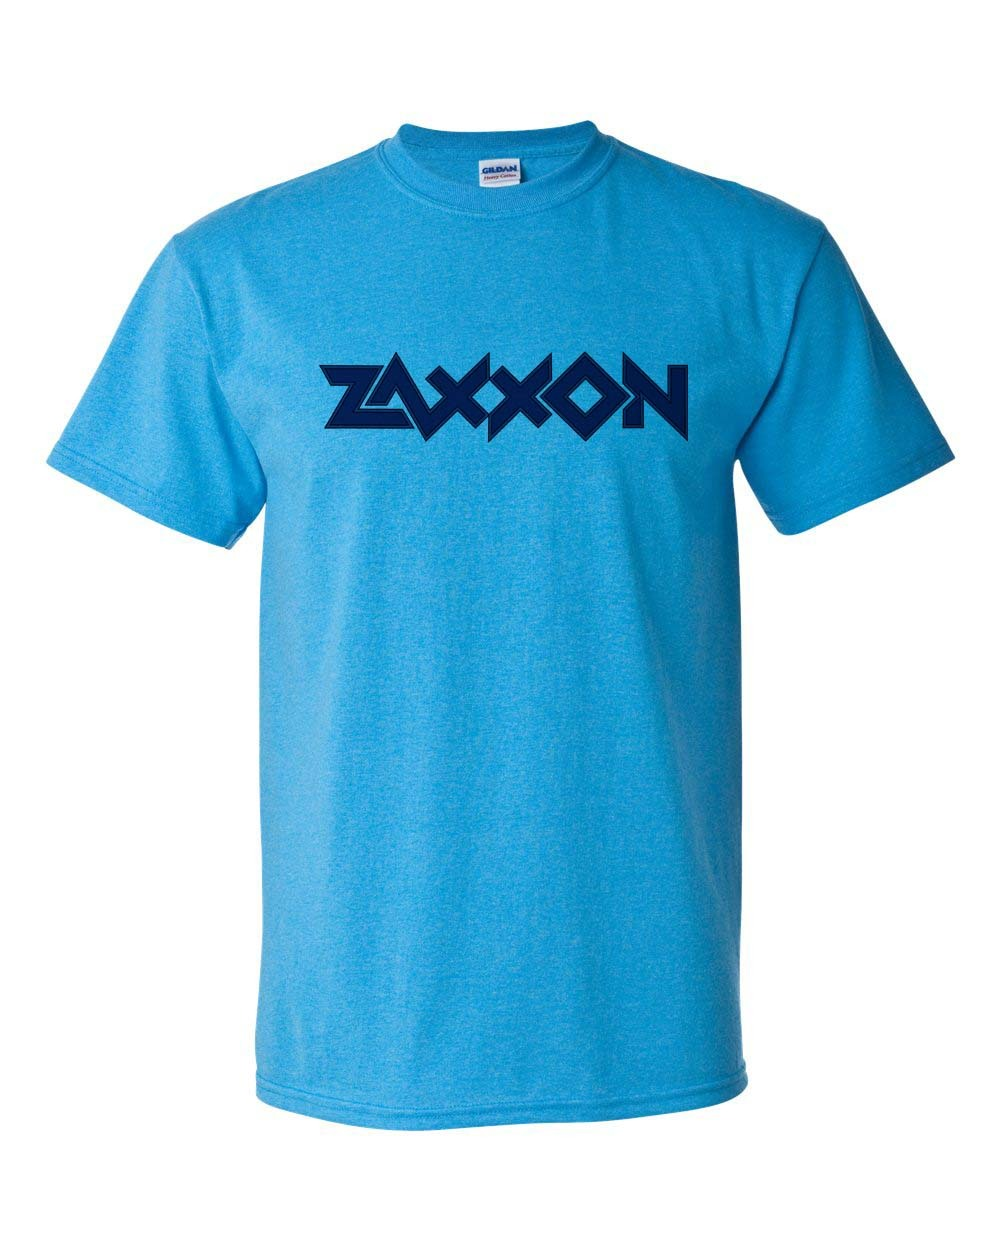 Zaxxon T-shirt arcade video game 80's heather blue cotton blend graphic tee